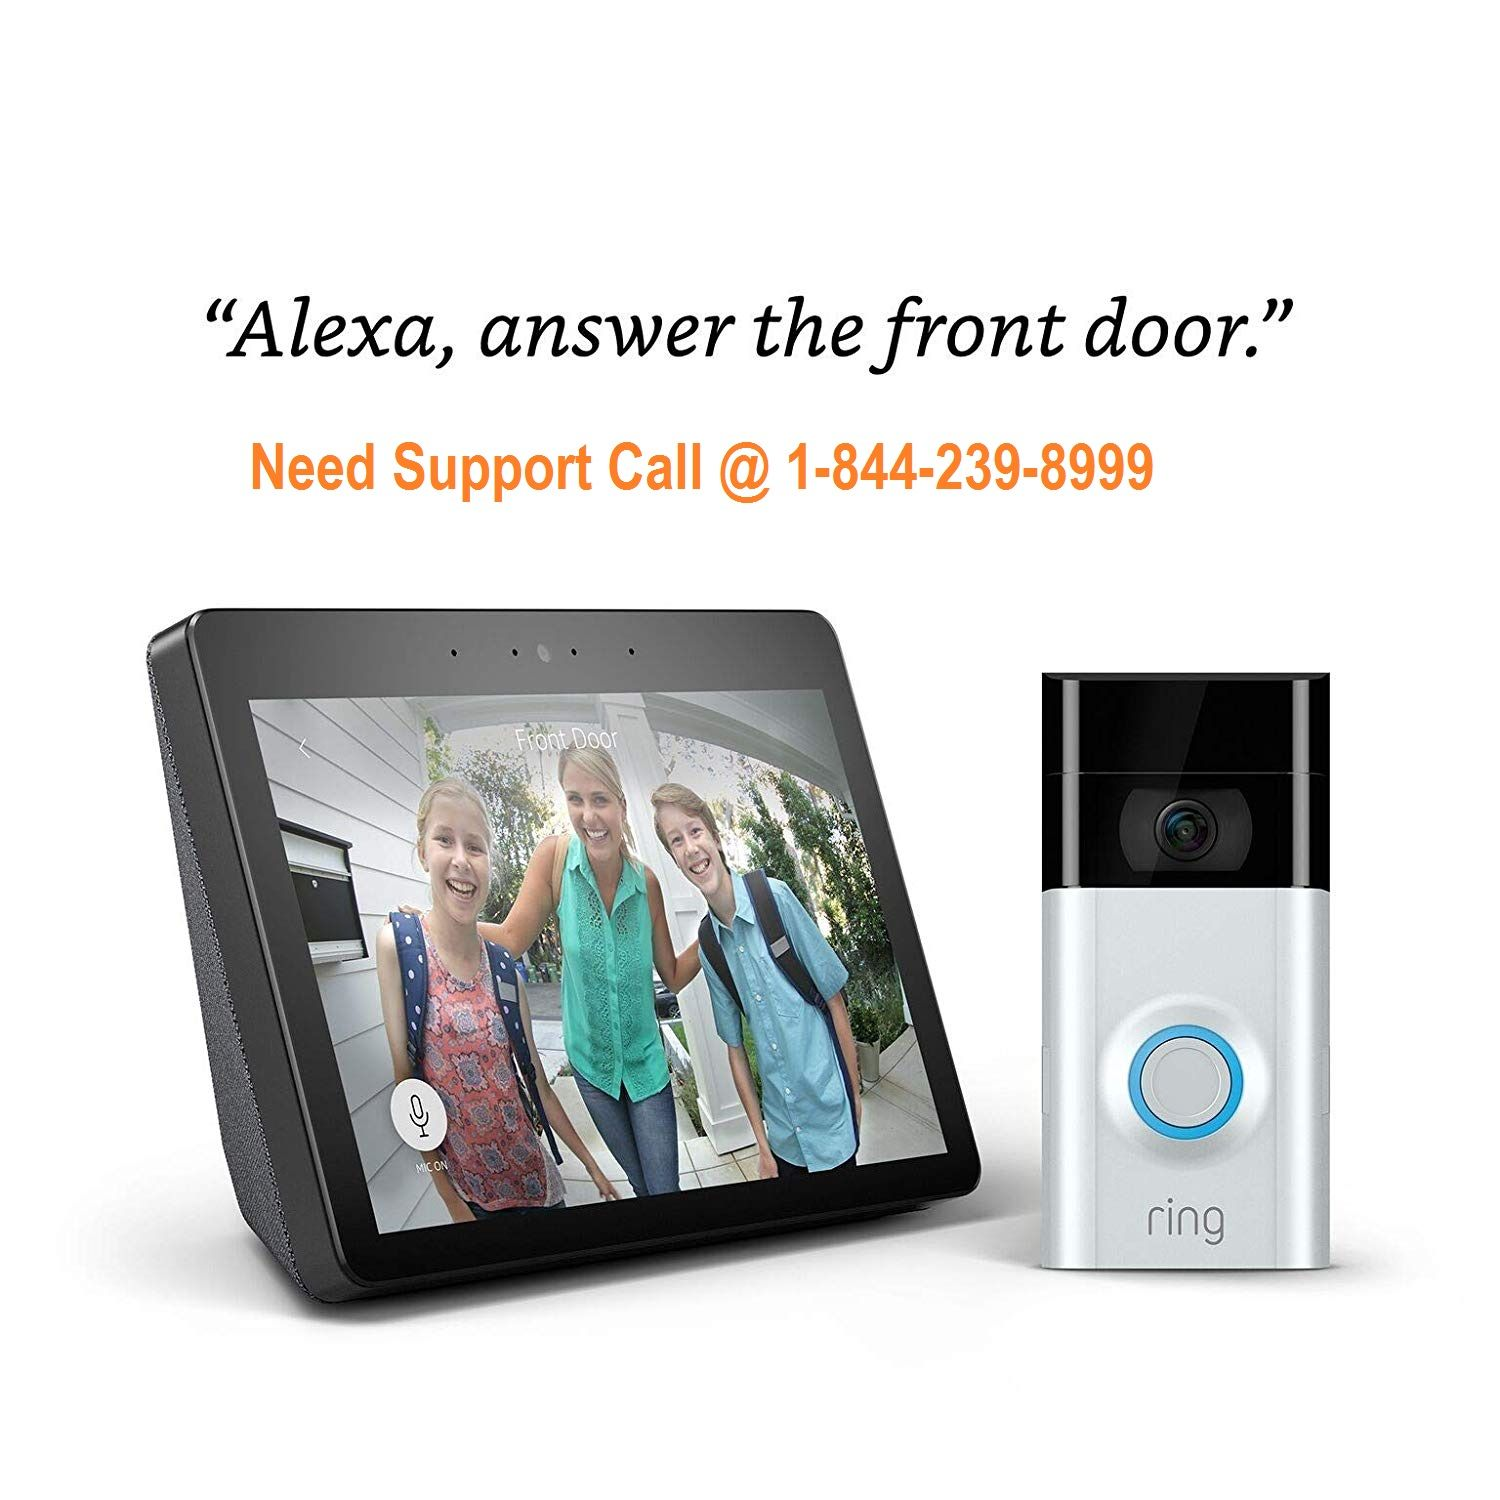 Video amarajones Alexa setup, Alexa app, Ring video